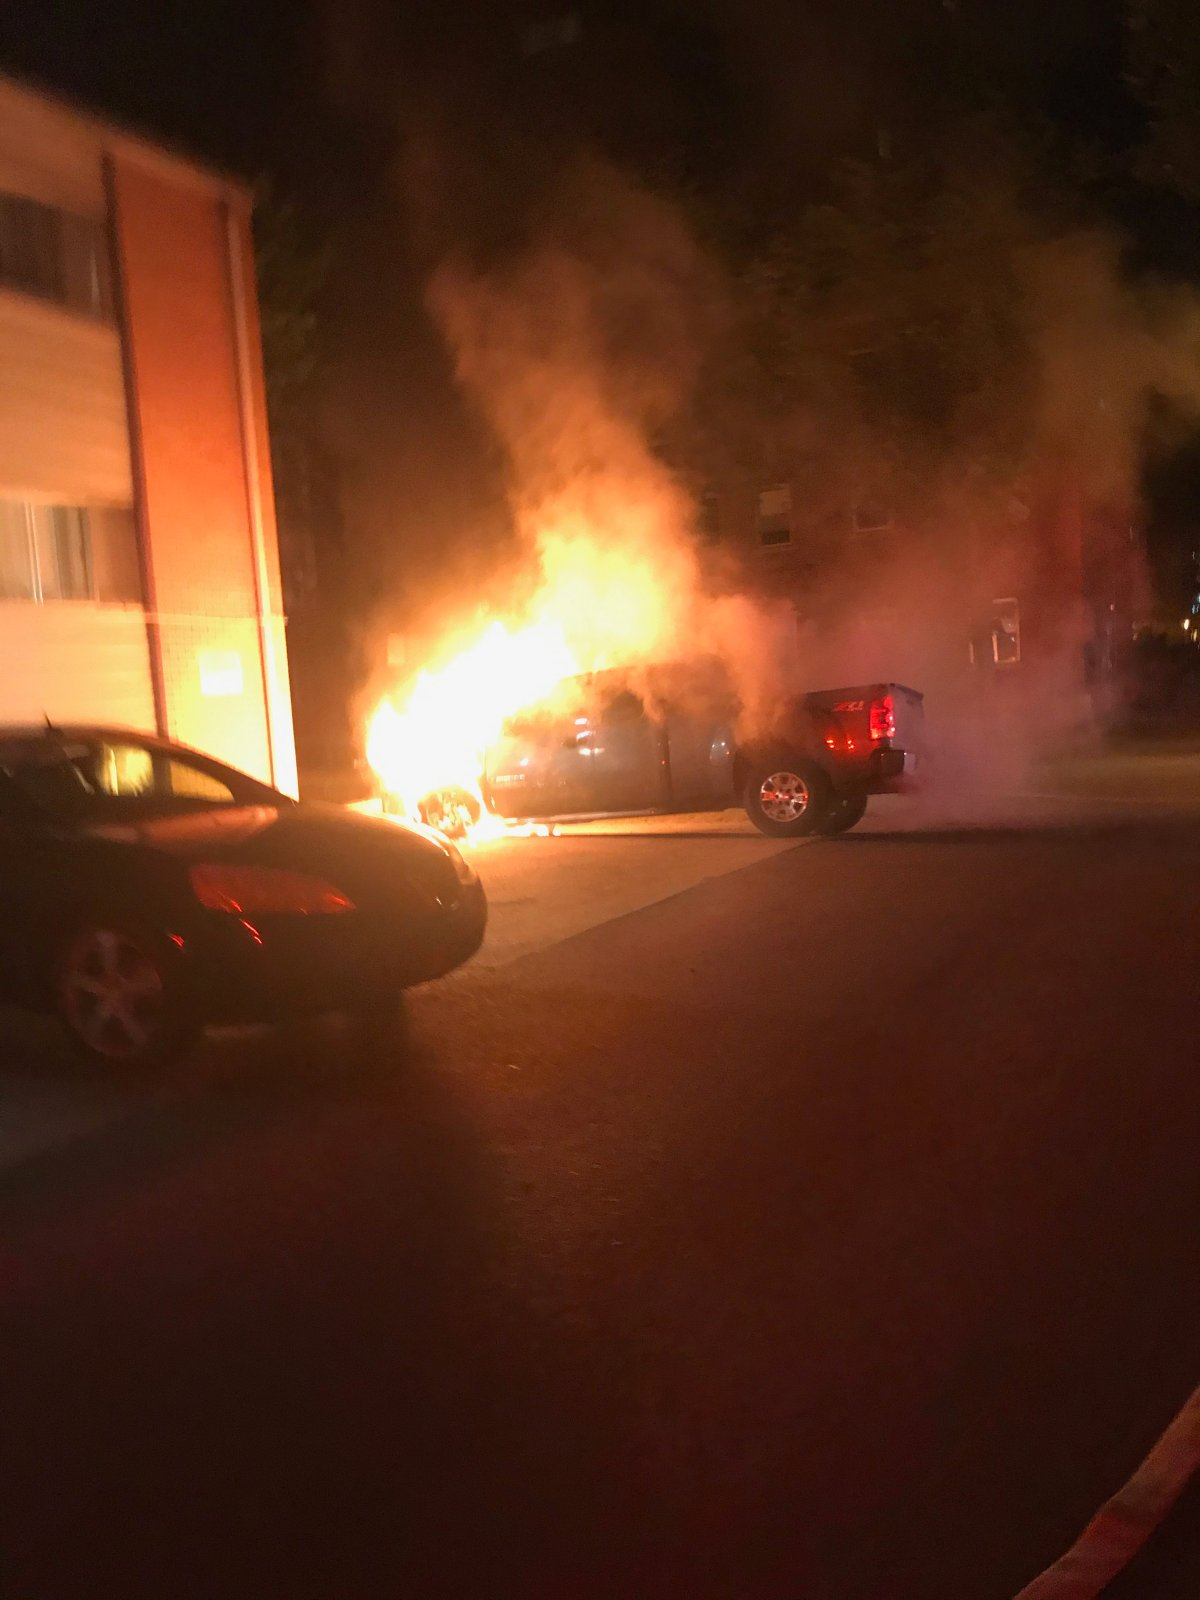 A GMC truck caught on fire Saturday morning in downtown Saskatoon, according to officials.